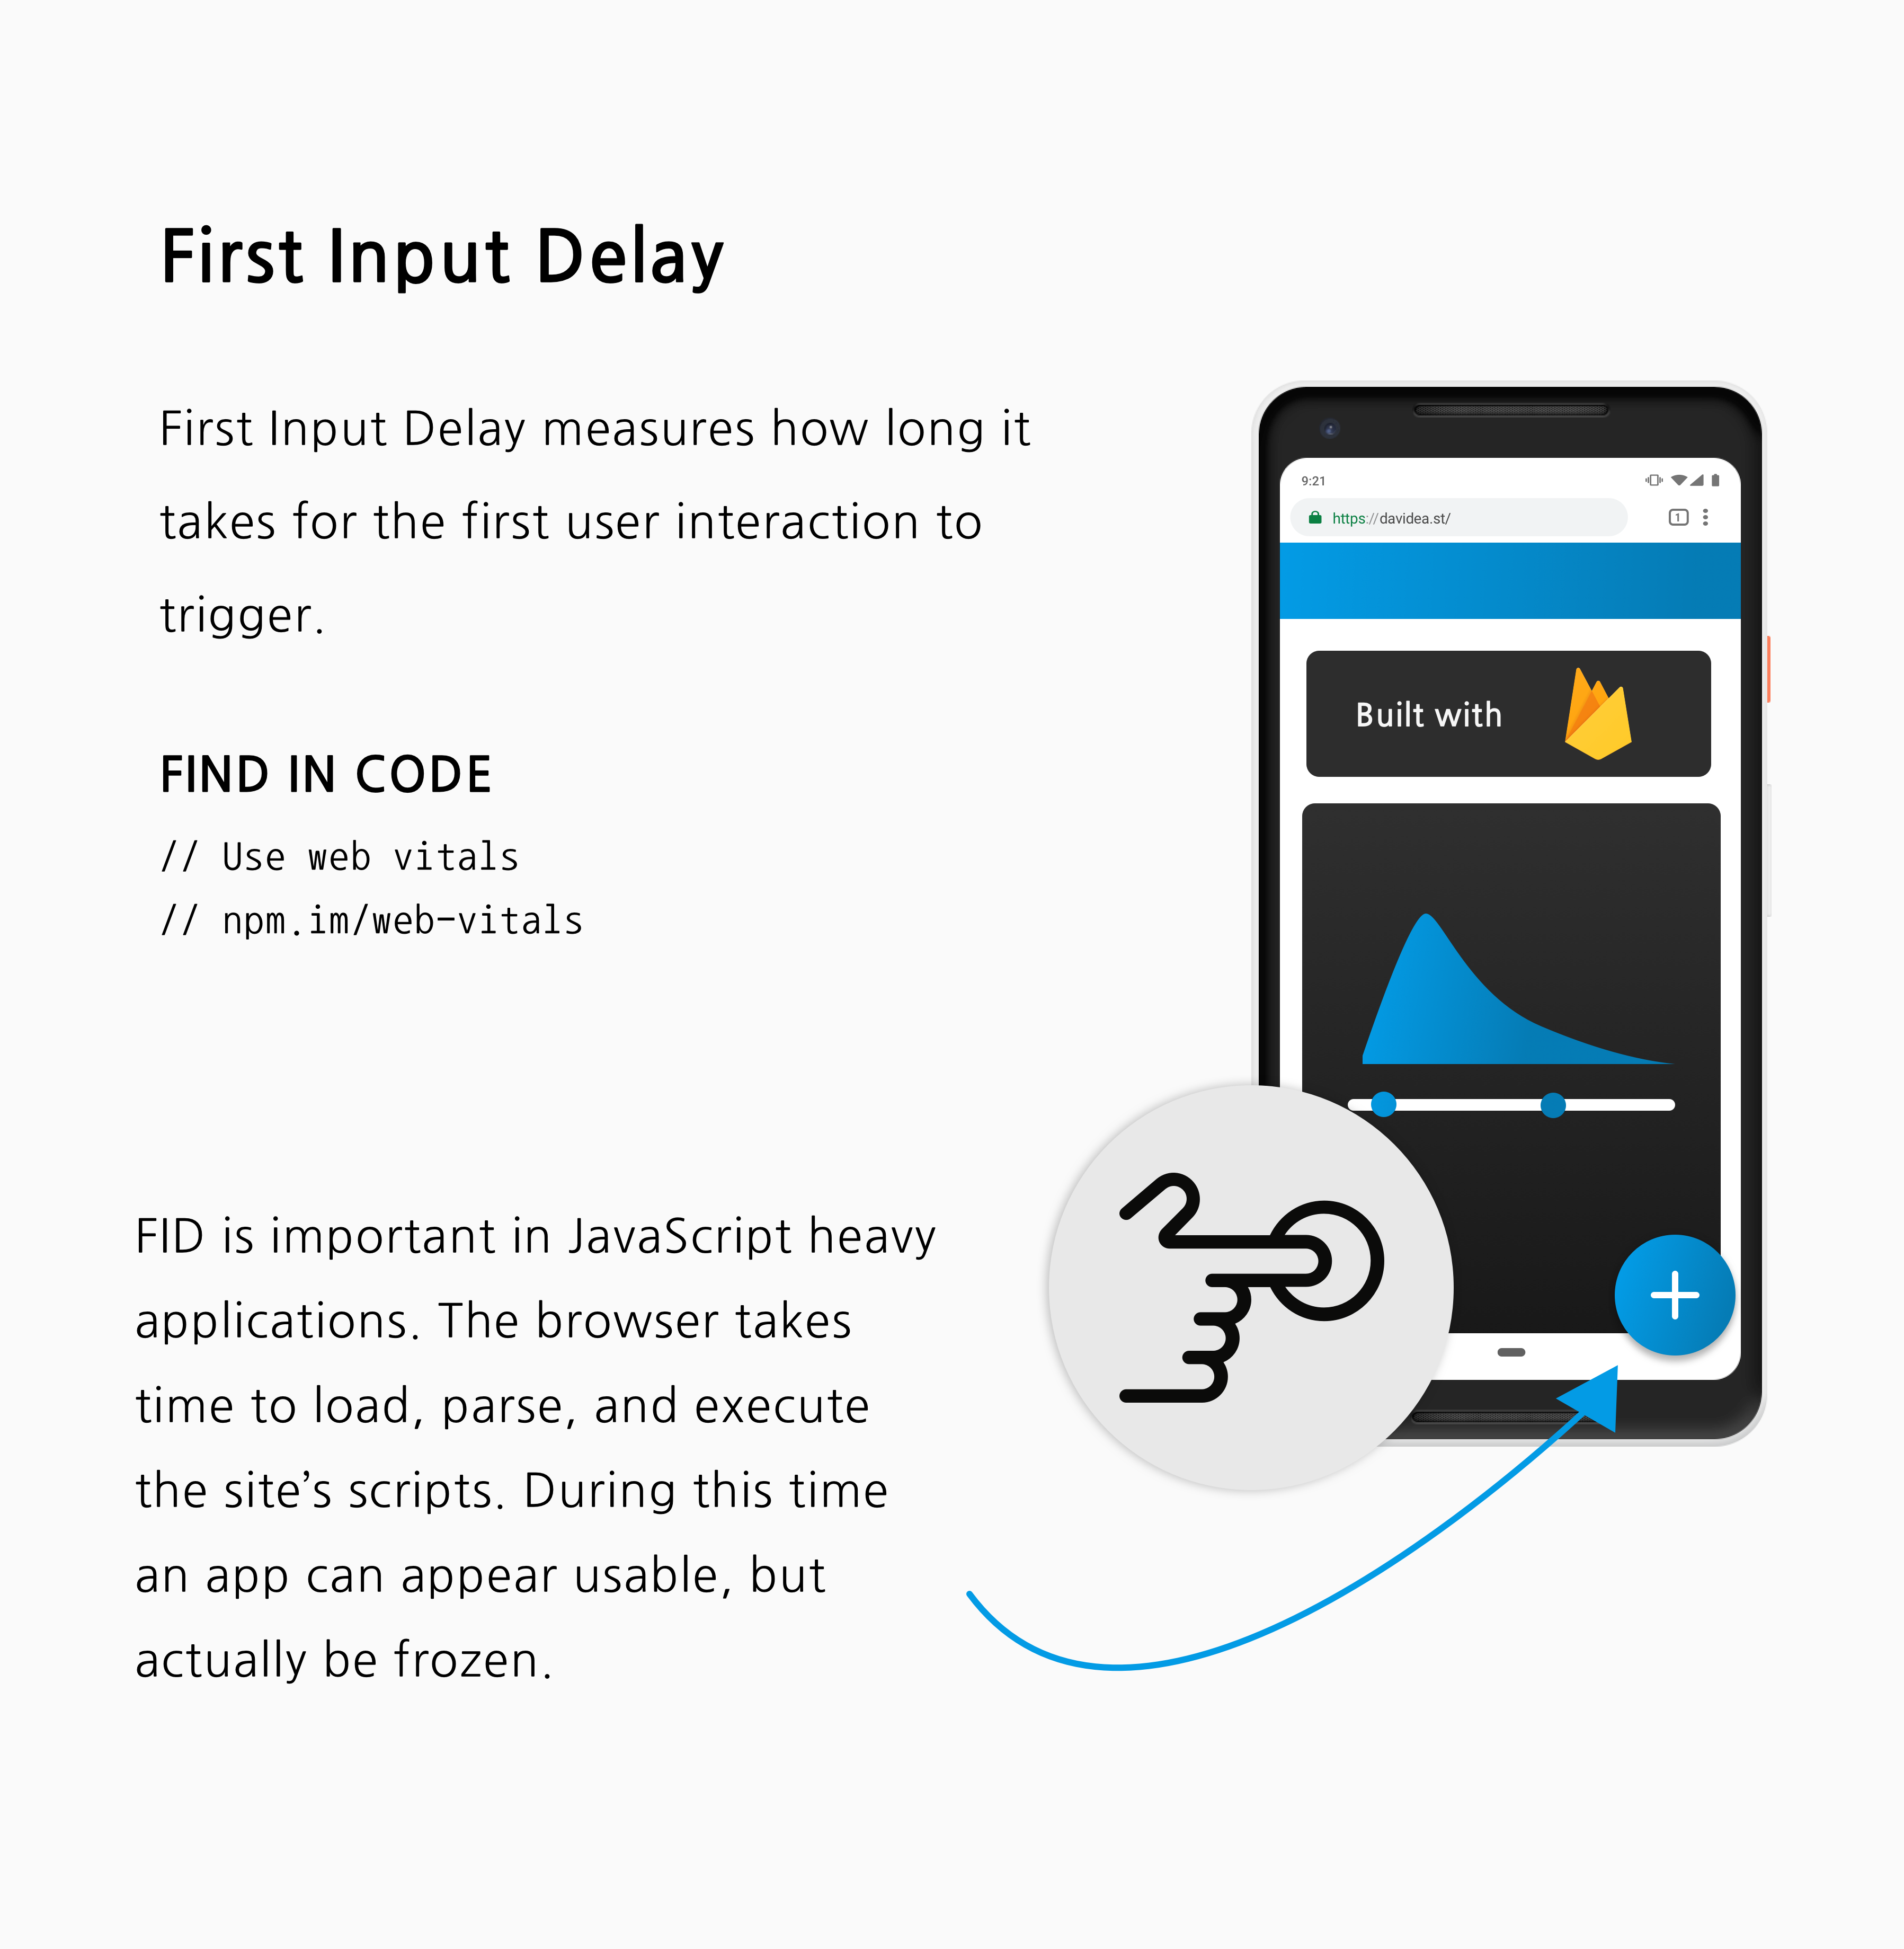 An explainer of First Input Delay. A phone with a user's finger trying to interact with the page.